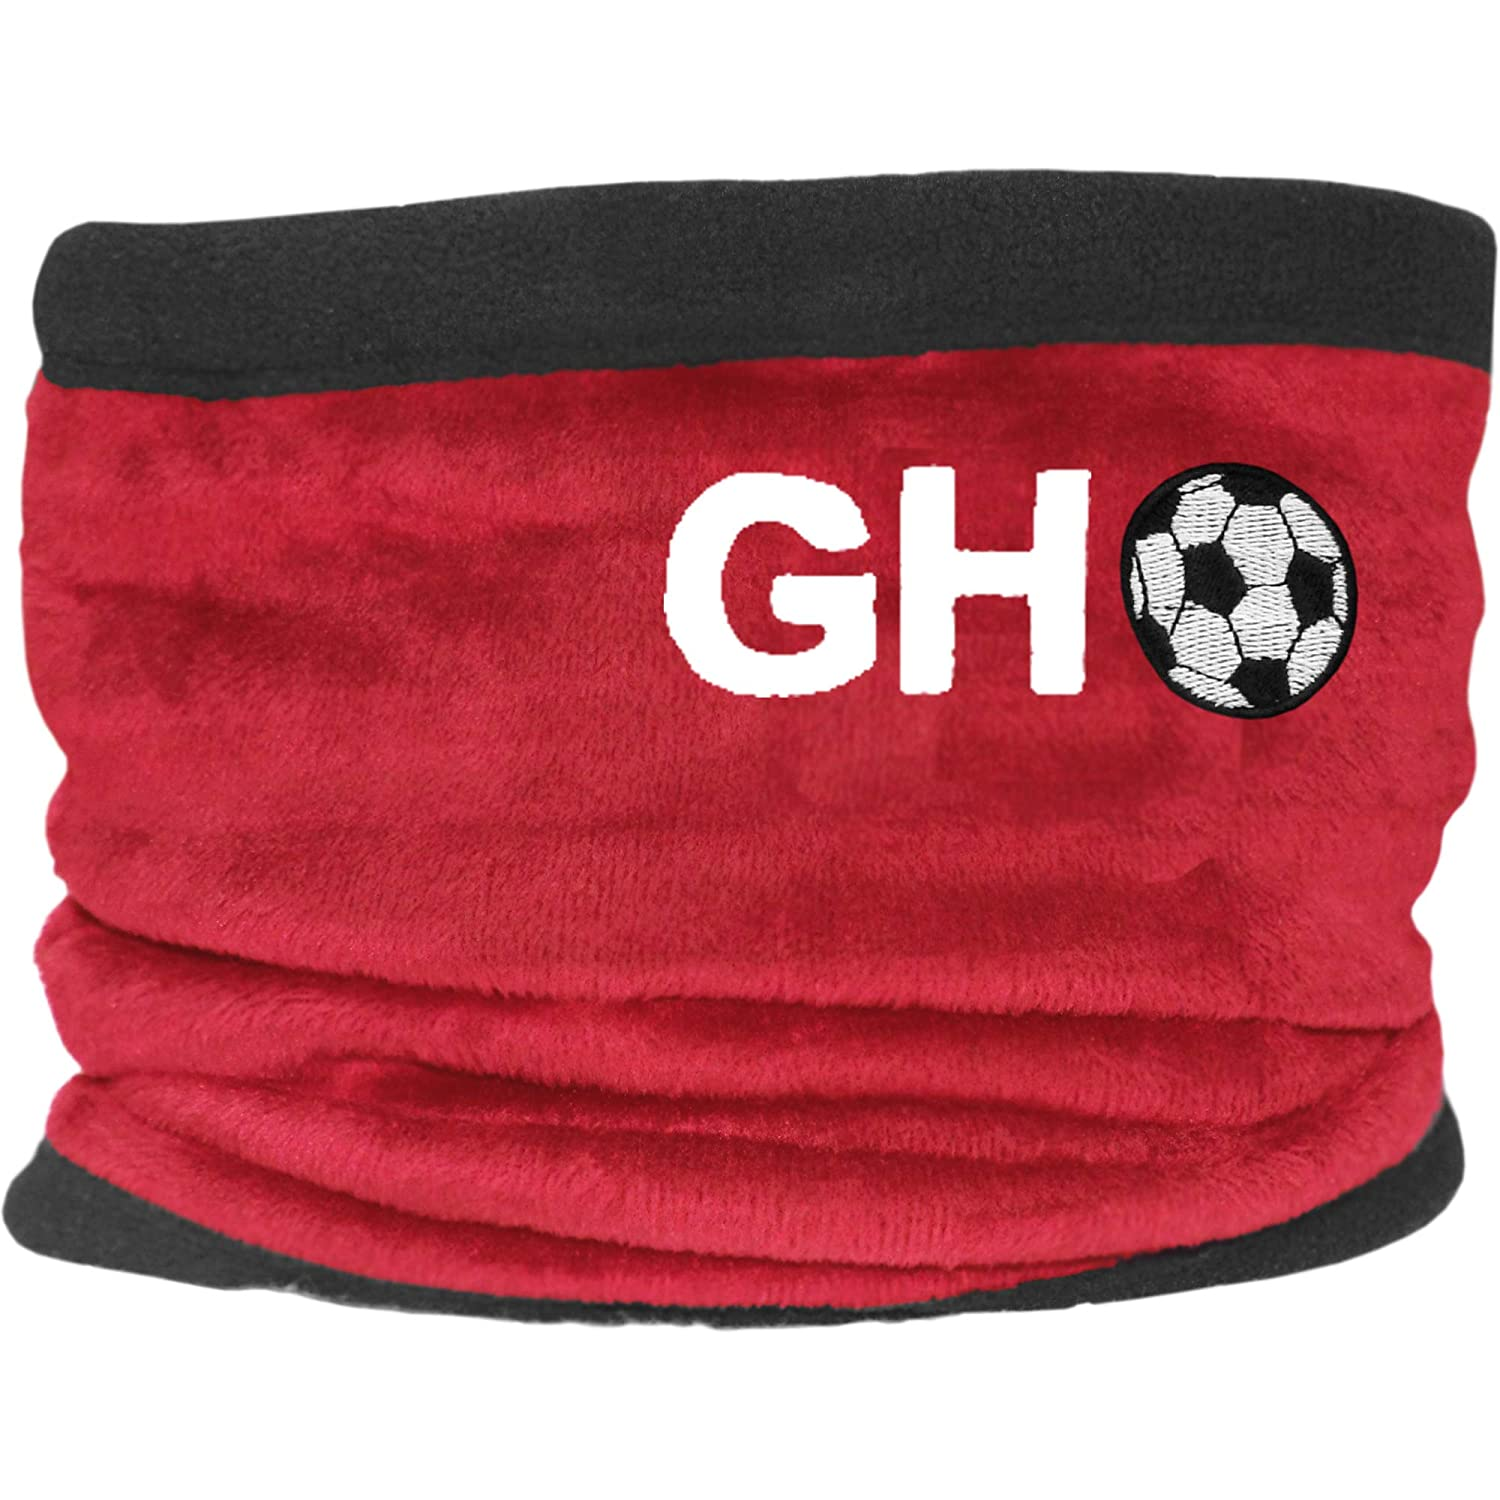 Boys Personalised Initials /& Football Fleece Sports Snood with Adjustable Toggle